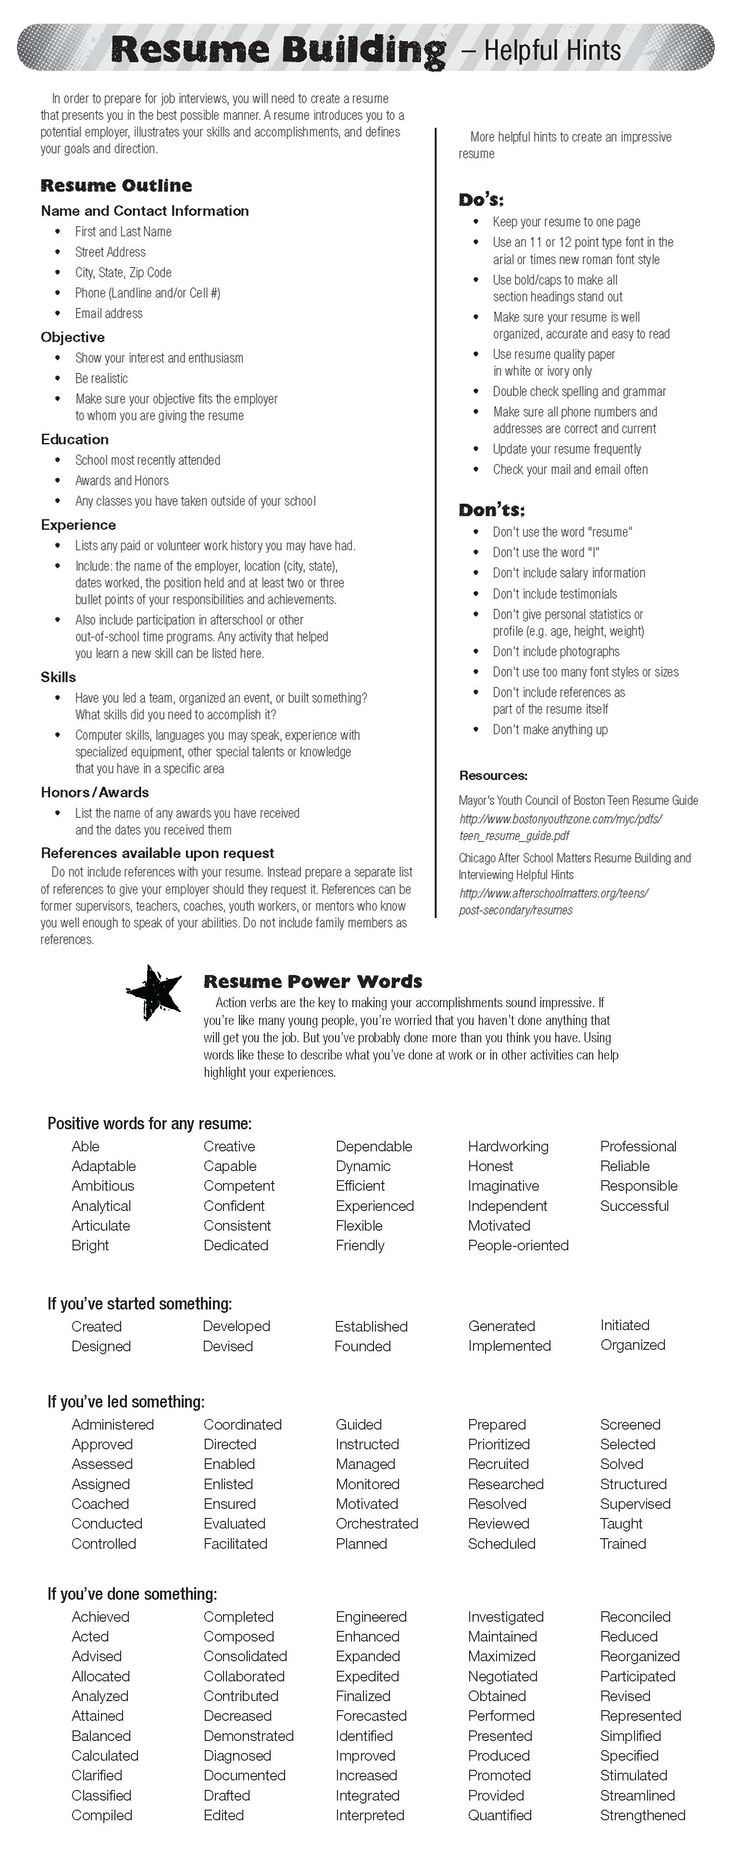 Opposenewapstandardsus  Pretty  Ideas About Resume On Pinterest  Cv Format Resume Cv And  With Fair  Ideas About Resume On Pinterest  Cv Format Resume Cv And Resume Templates With Amazing Sample Lvn Resume Also Sample Executive Resumes In Addition What Is Cover Letter Resume And Entry Level Resume Objectives As Well As Resumes On Indeed Additionally Medical Science Liaison Resume From Pinterestcom With Opposenewapstandardsus  Fair  Ideas About Resume On Pinterest  Cv Format Resume Cv And  With Amazing  Ideas About Resume On Pinterest  Cv Format Resume Cv And Resume Templates And Pretty Sample Lvn Resume Also Sample Executive Resumes In Addition What Is Cover Letter Resume From Pinterestcom